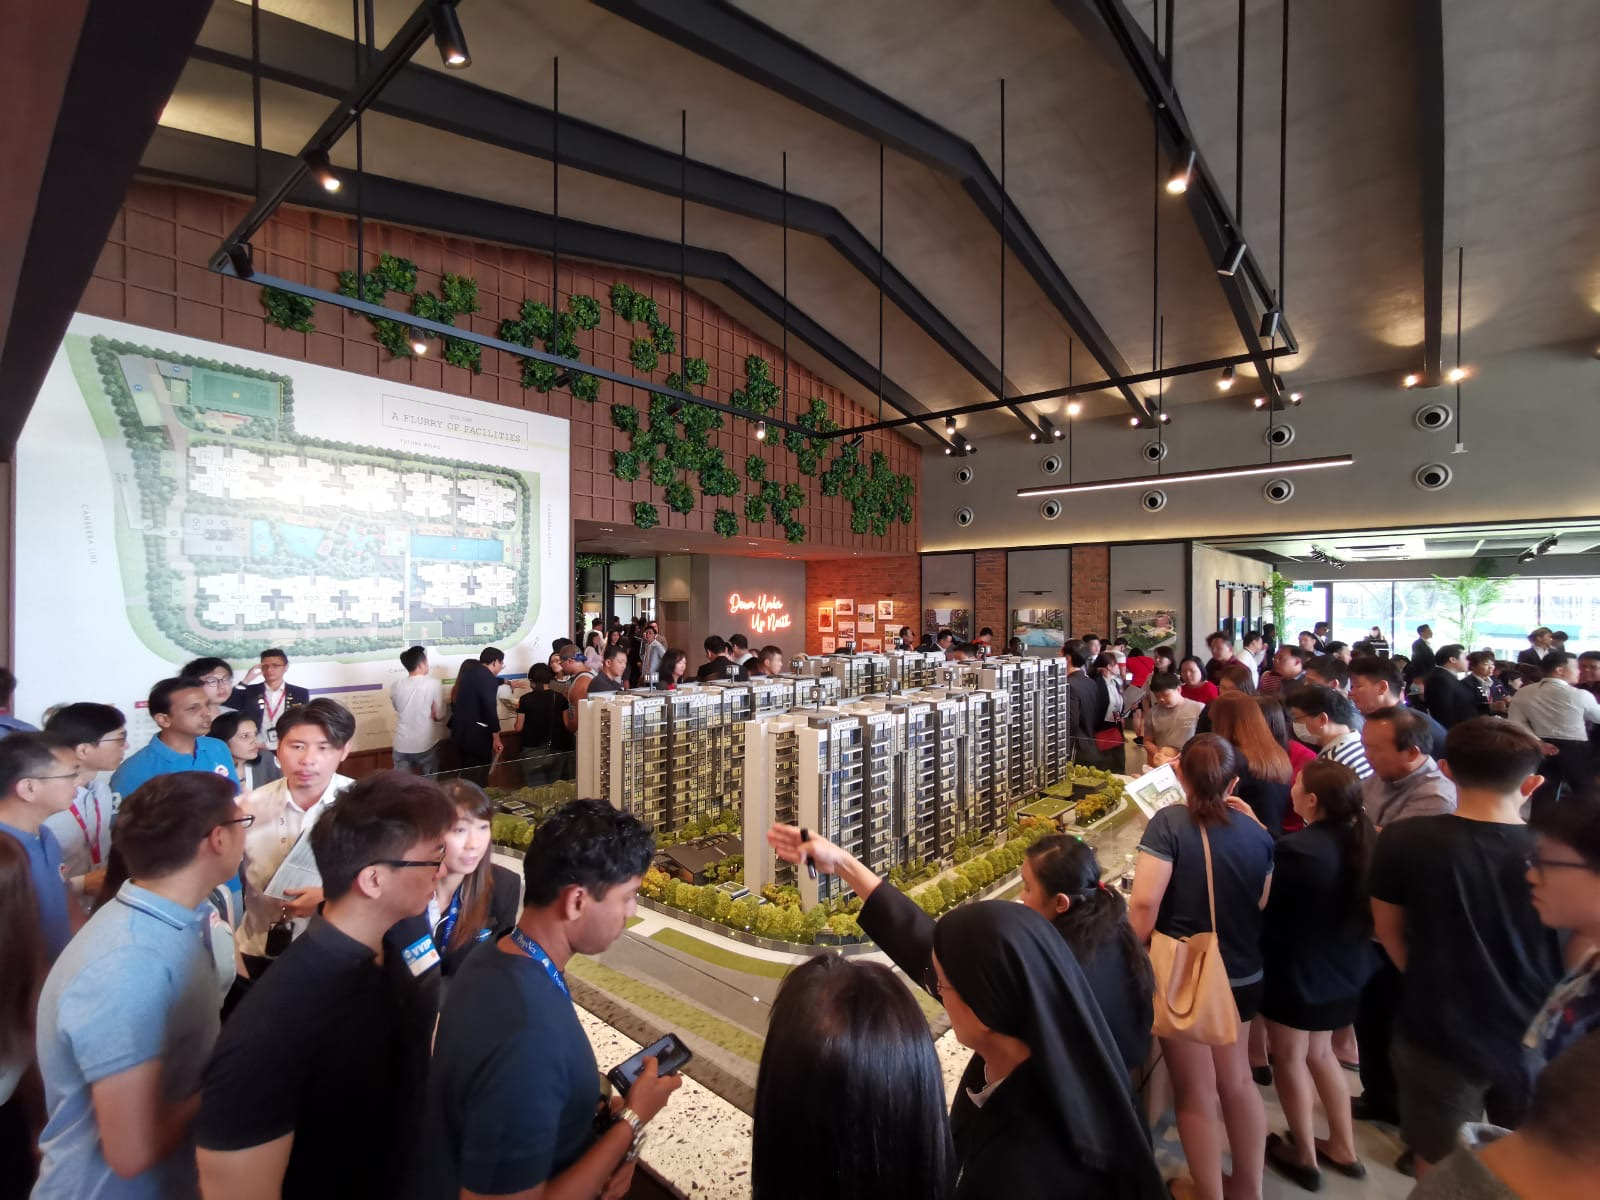 The crowd at Parc Canberra showflat on the first weekend of public preview (Photo: Albert Chua/EdgeProp Singapore)